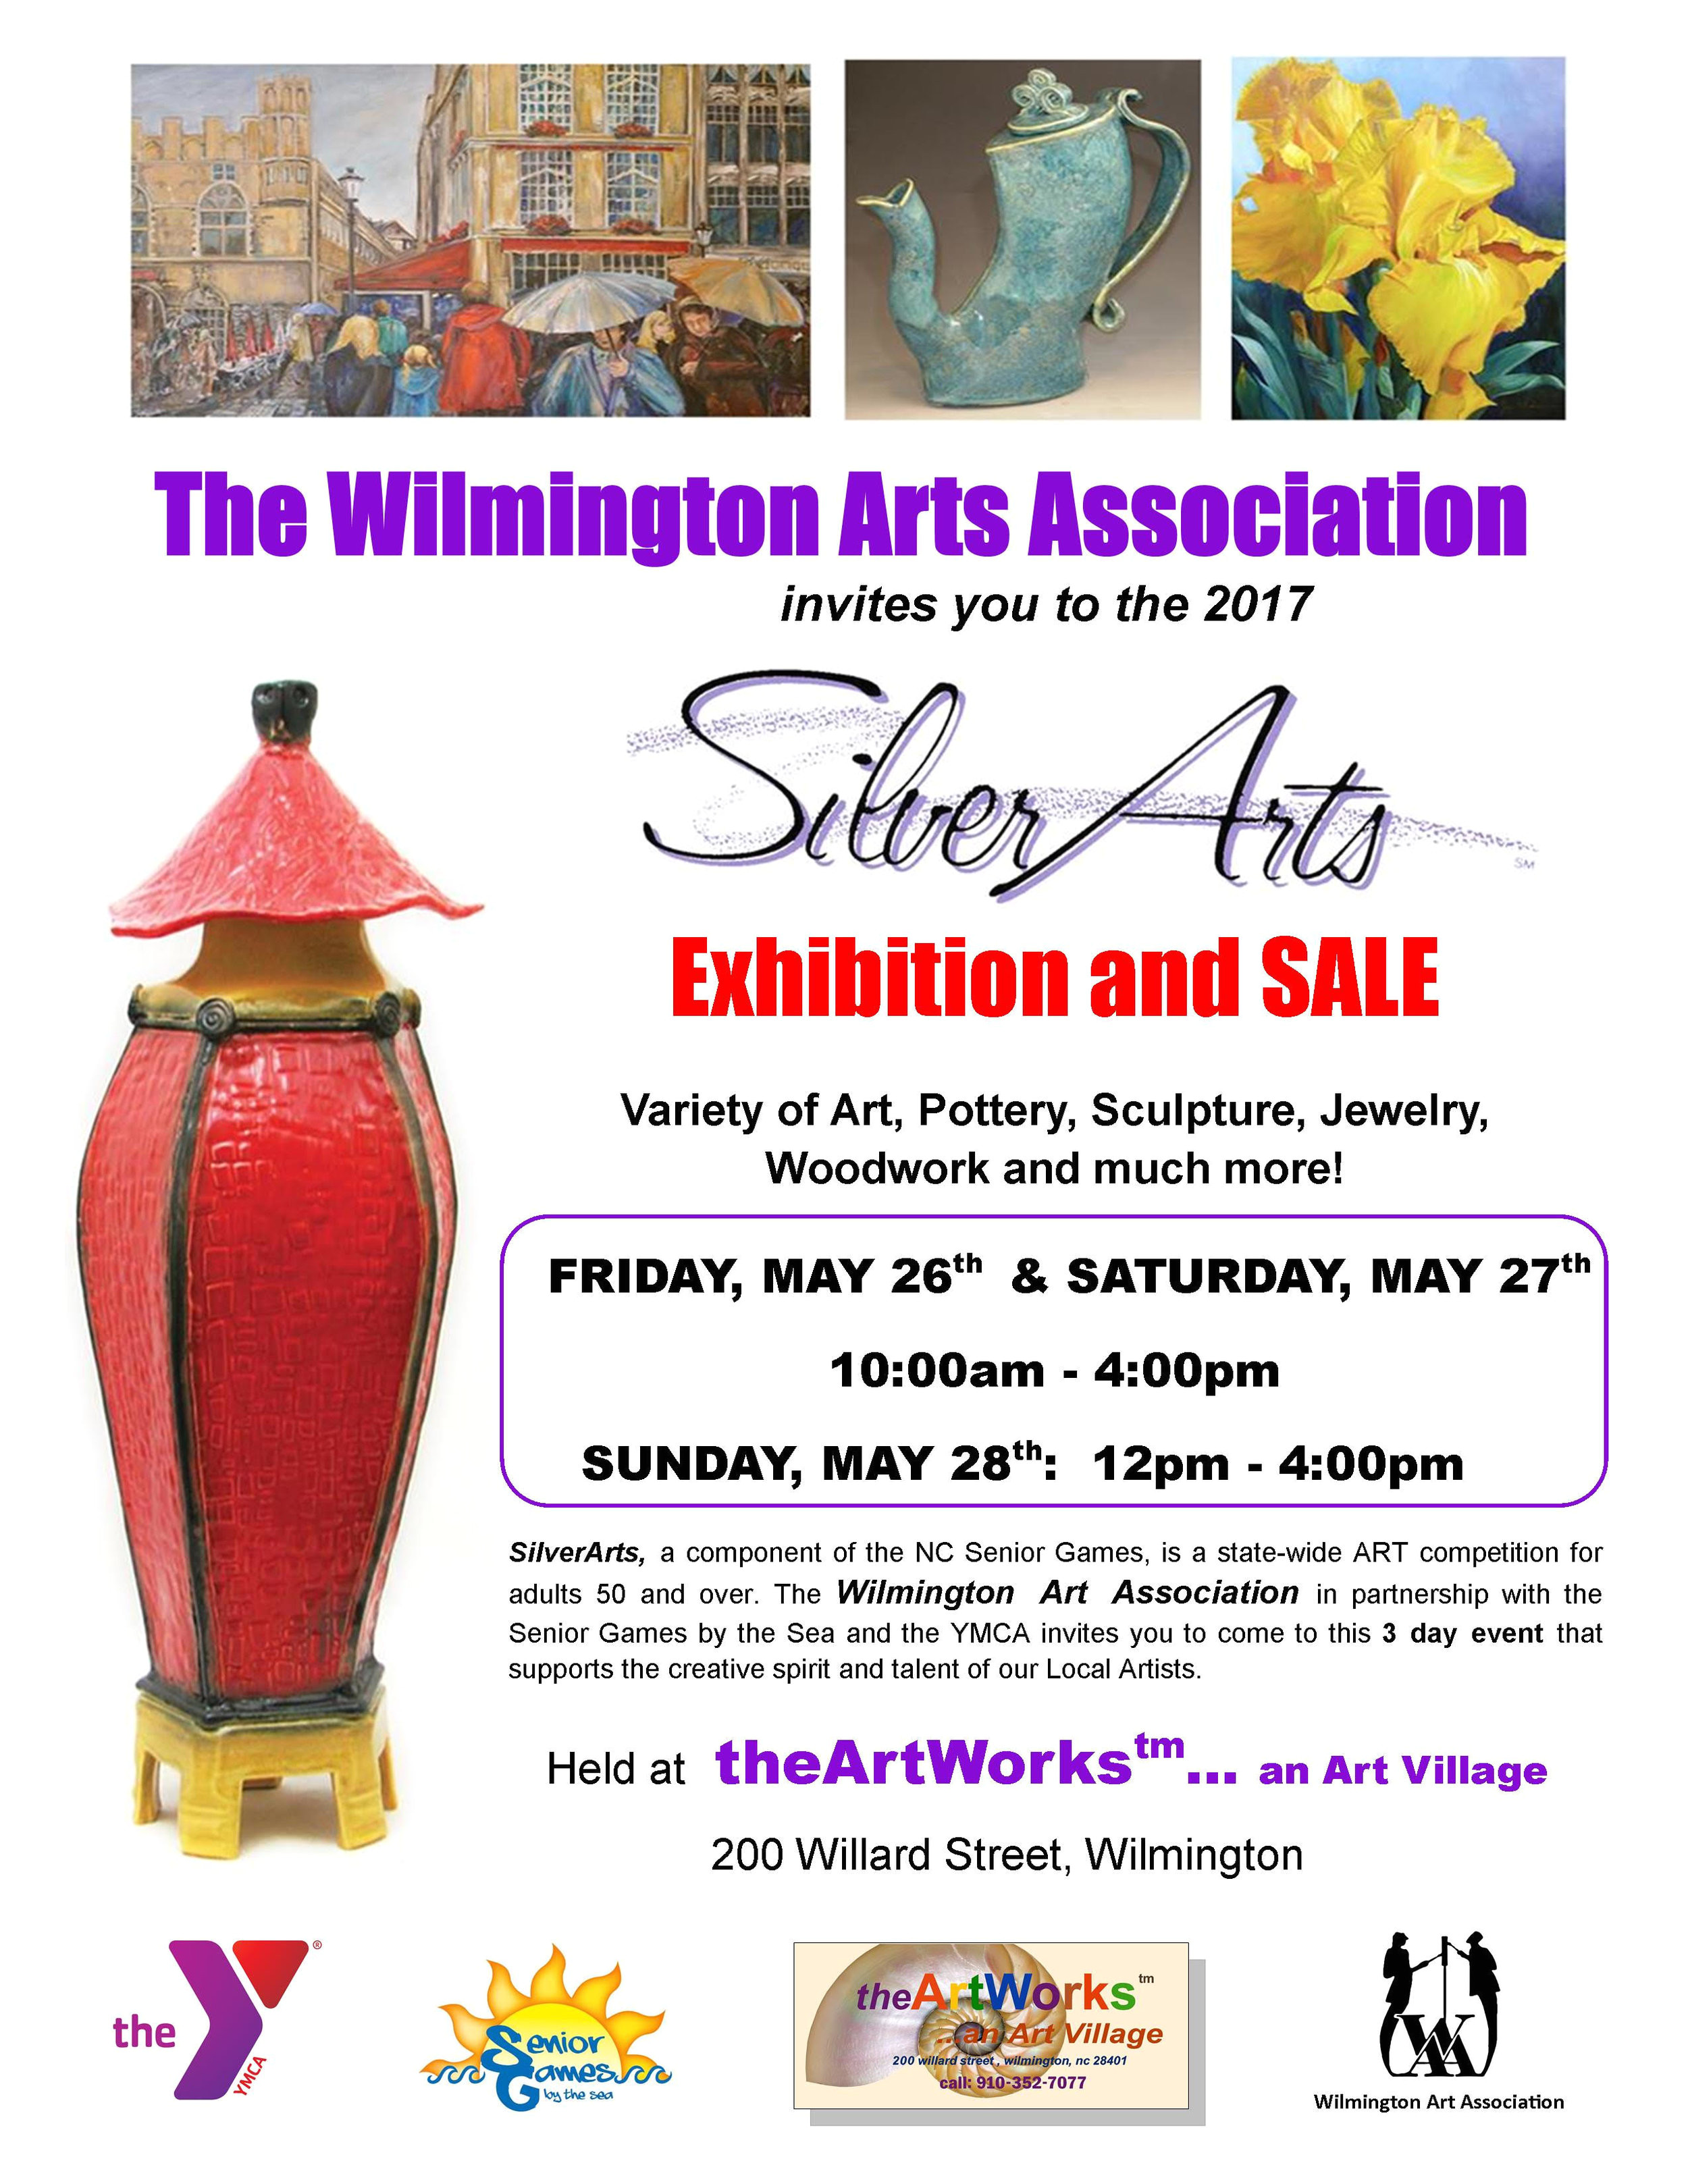 the 2017 silverarts competition will once again take place at theartworksa at 200 willard street wilmington nc theartworksa once housed the thriving block